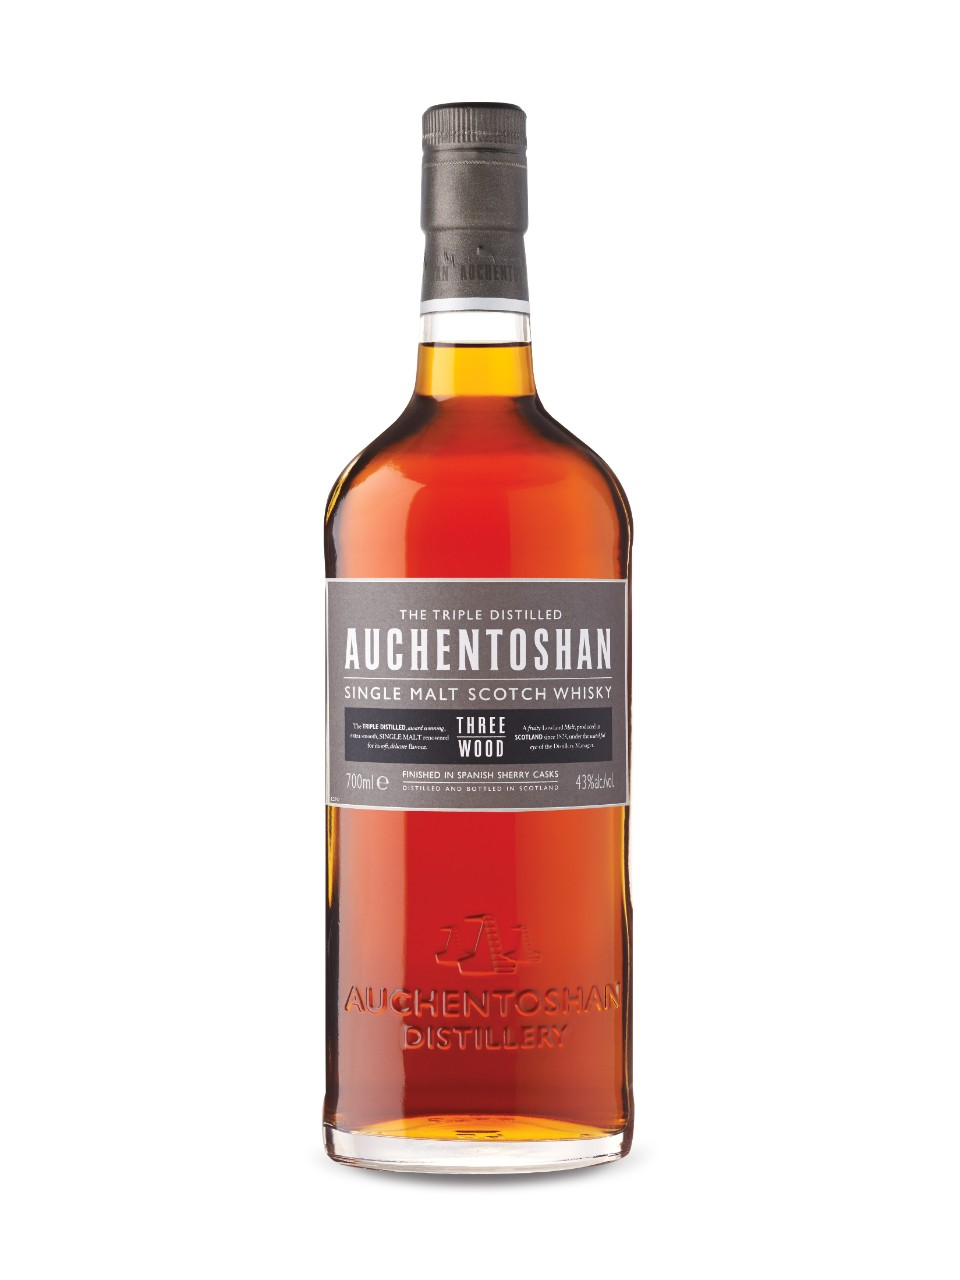 Auchentoshan Three Wood Lowland Single Malt Scotch Whisky from LCBO